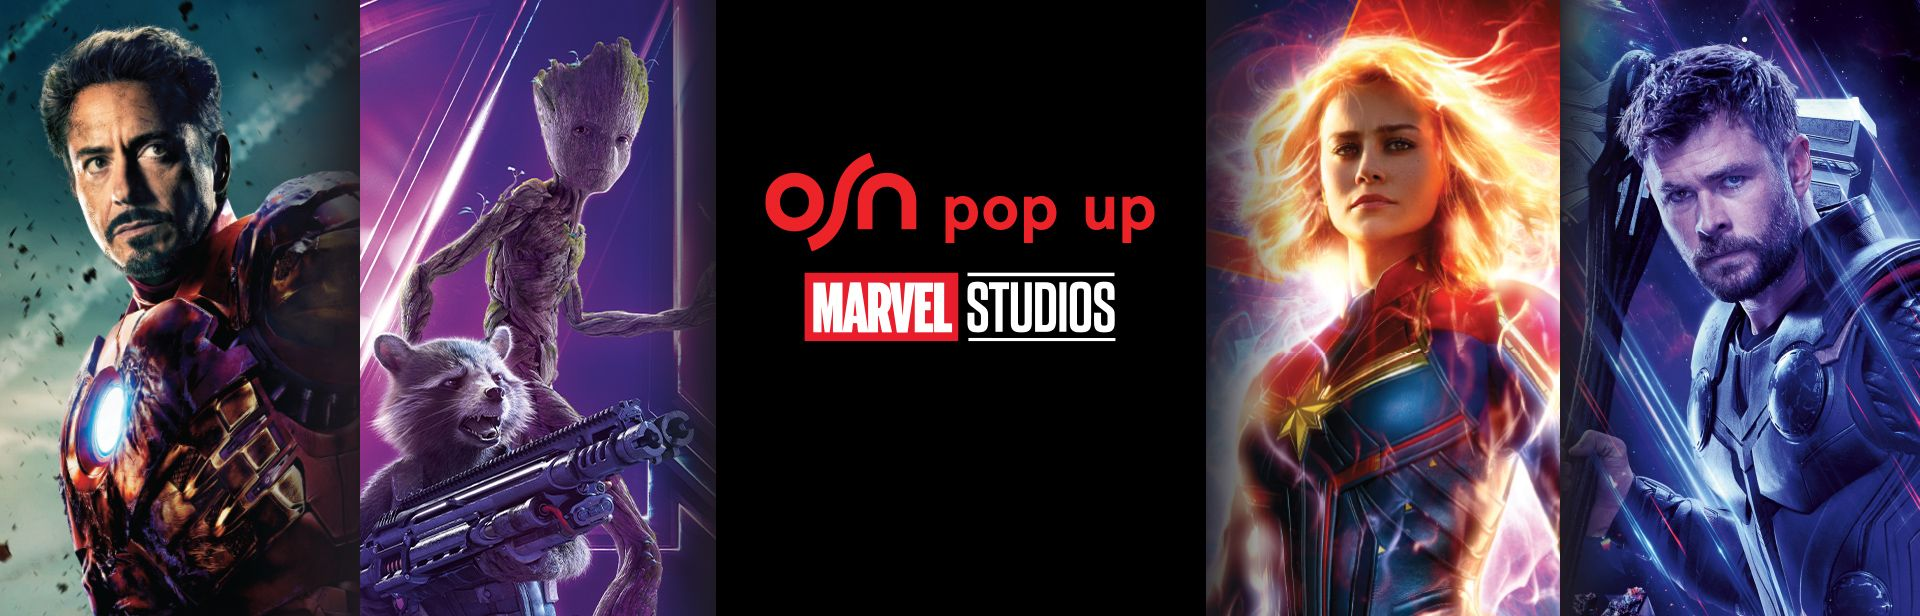 Watch Marvel Ous Movies On Osn Pop Up Best Superhero Movies Marvel Best Marvel Movies